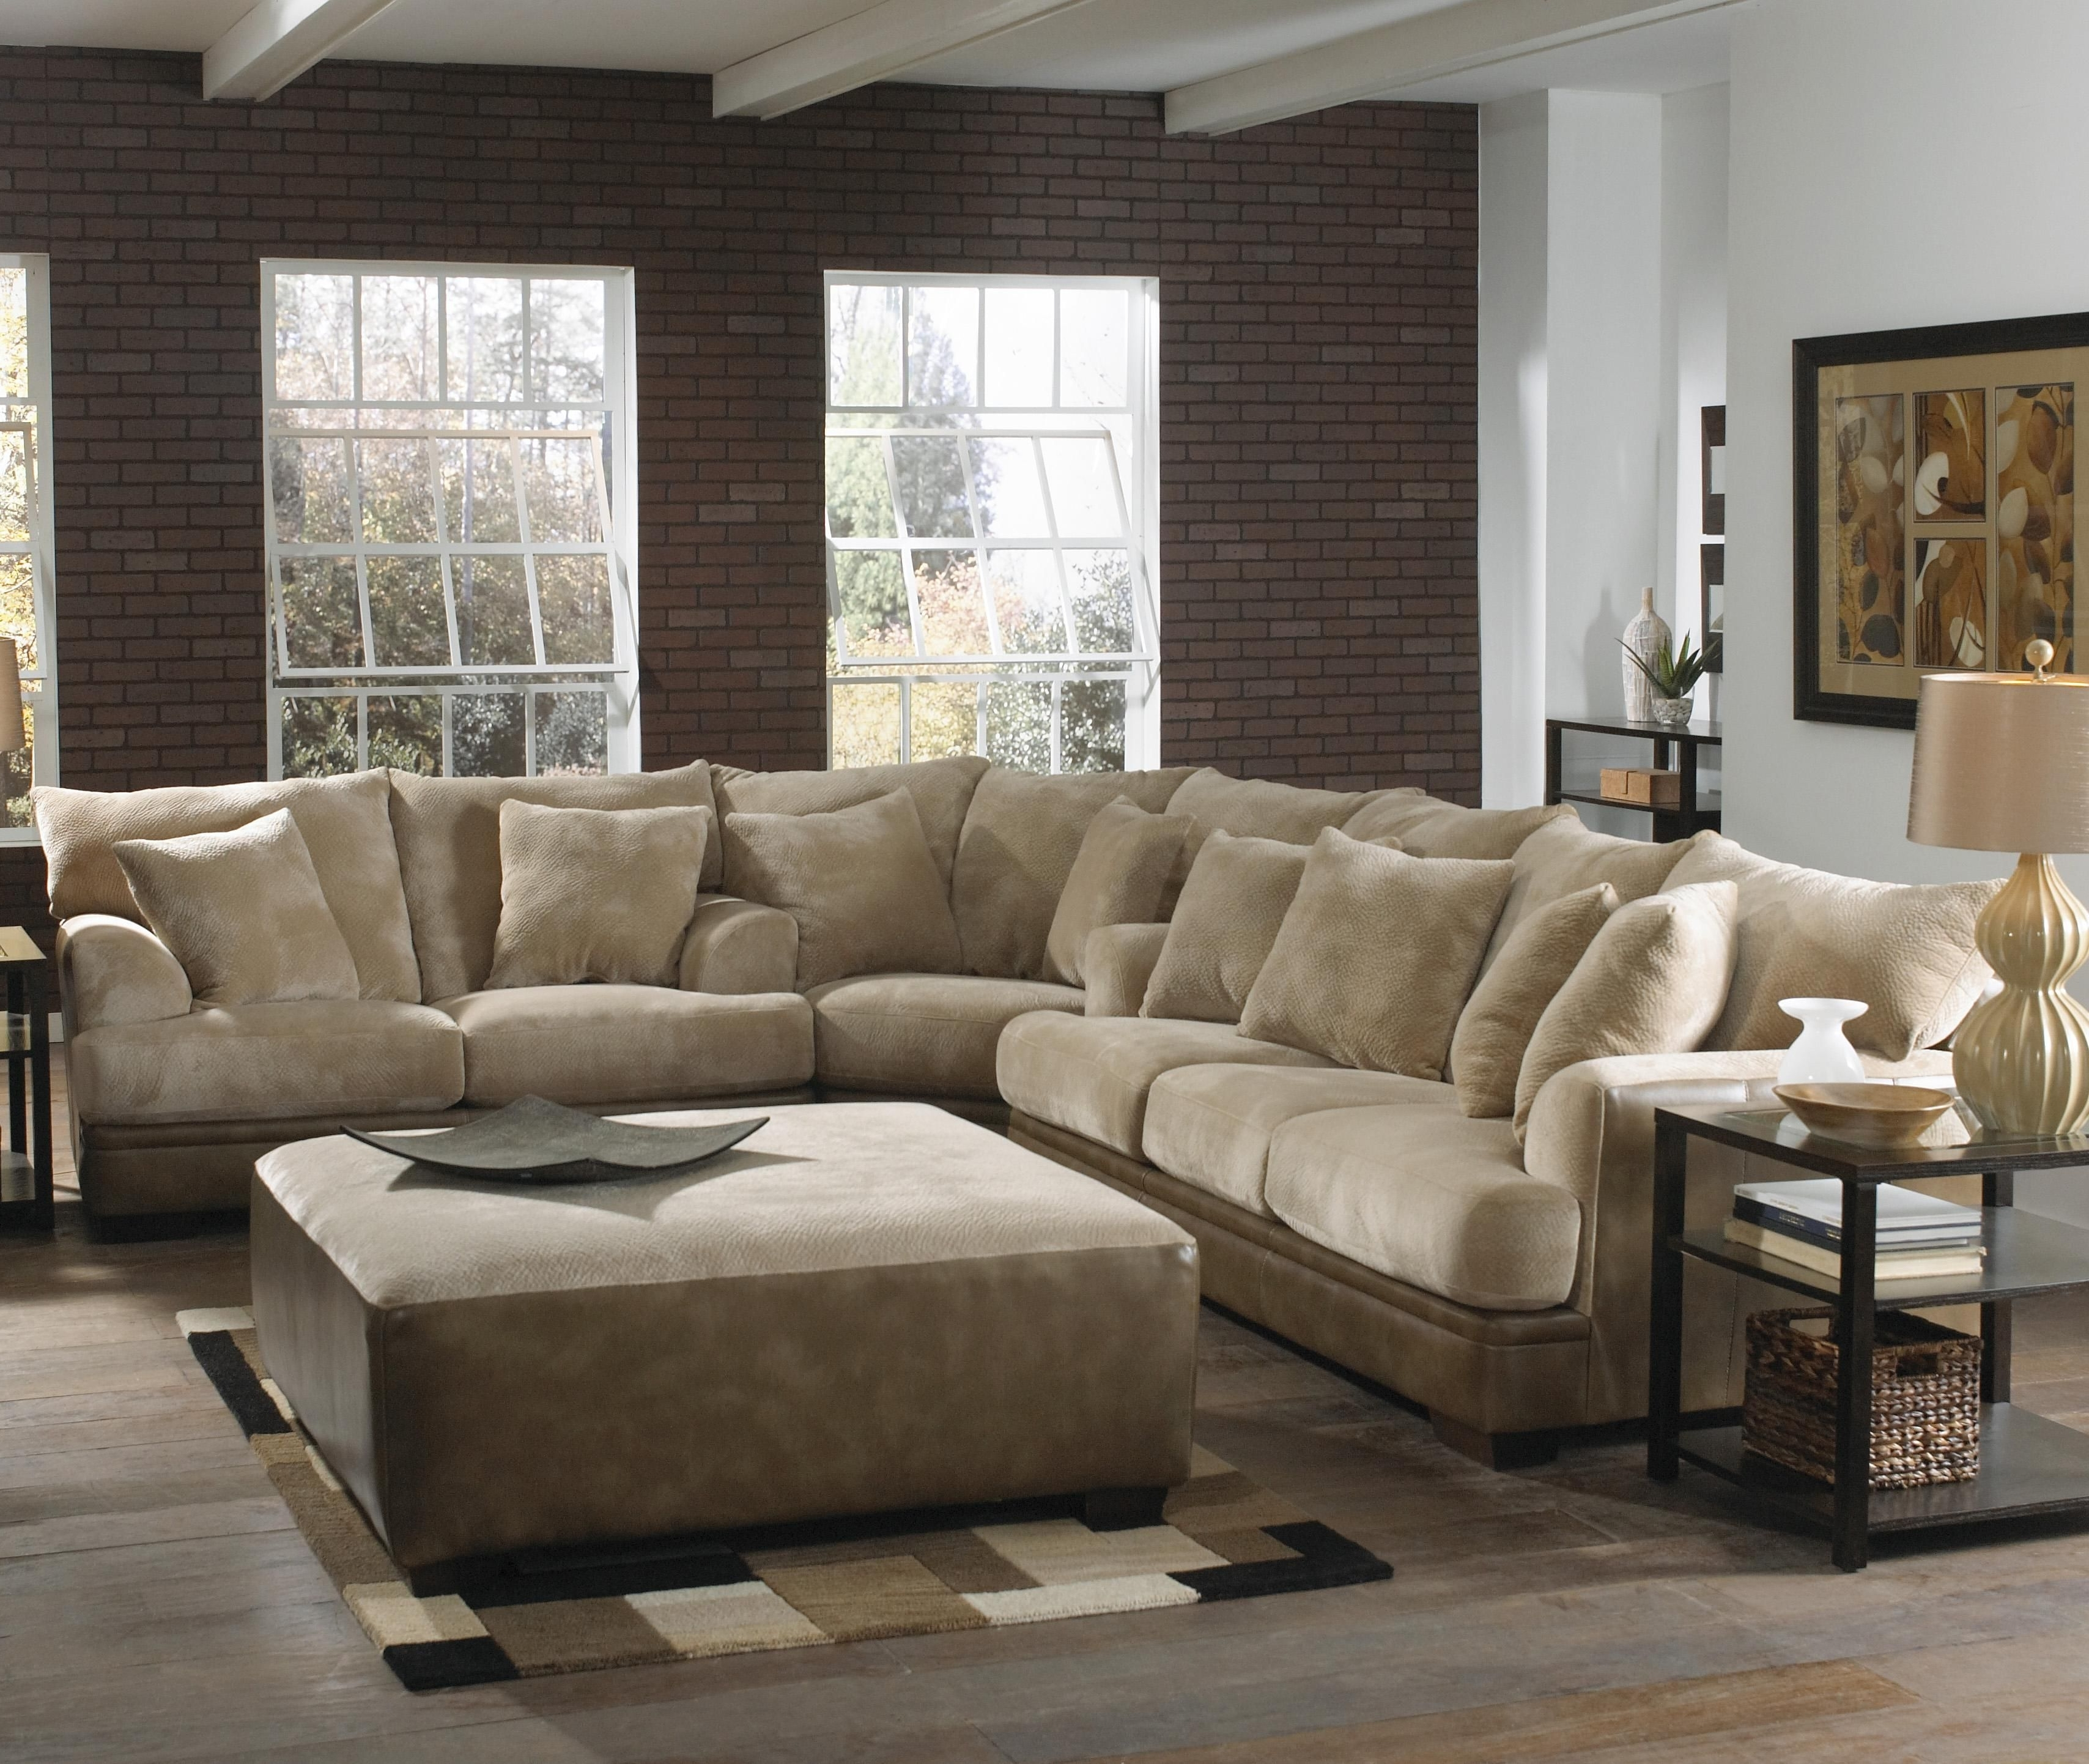 2019 Barkley Large L Shaped Sectional Sofa With Right Side Loveseat Intended For Jackson Tn Sectional Sofas (View 3 of 20)